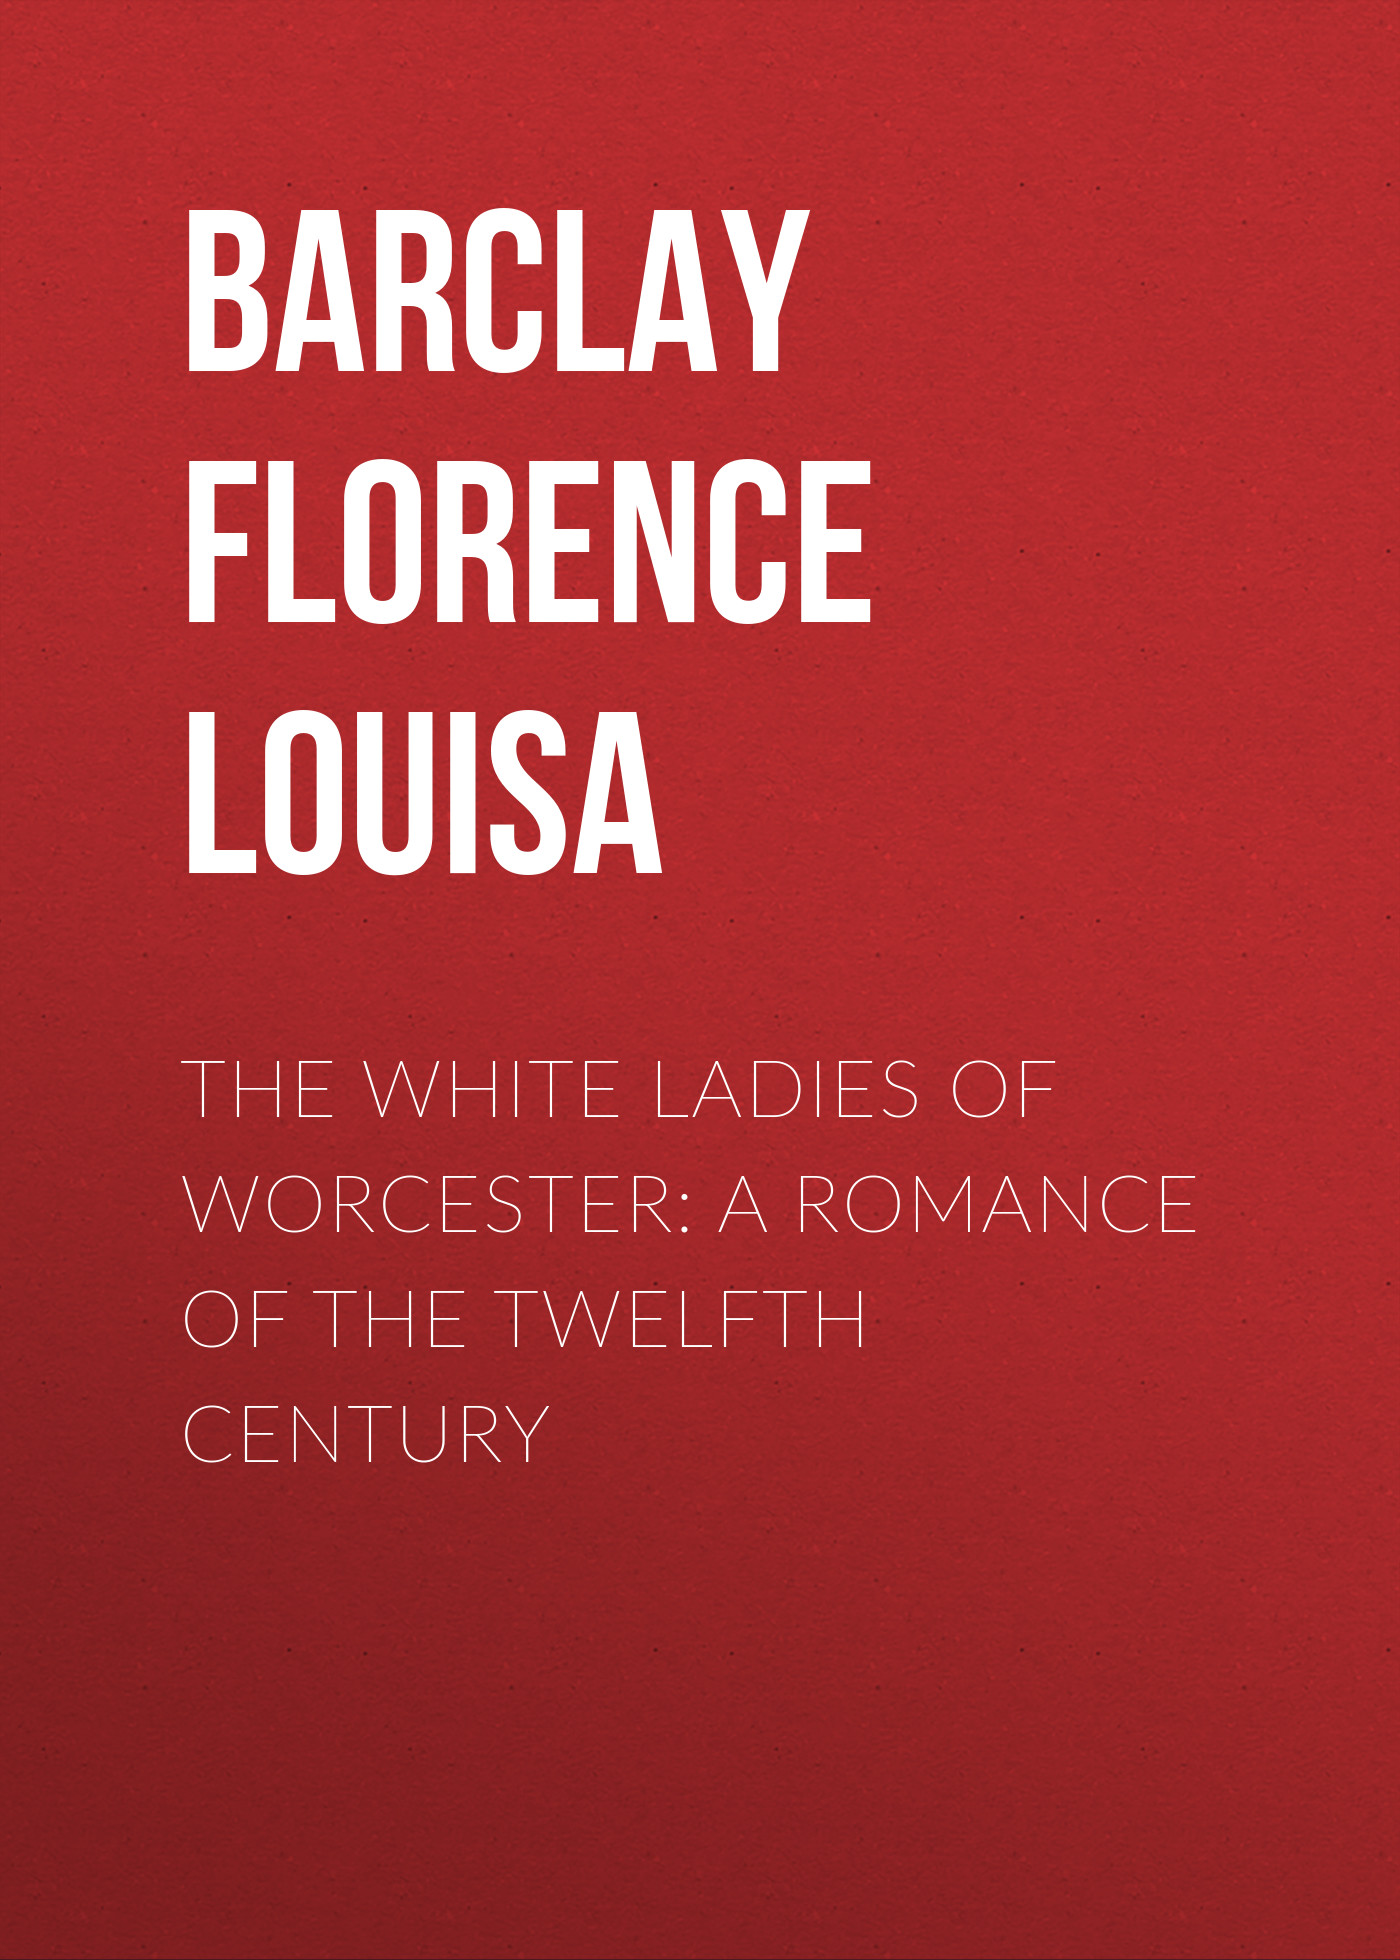 Фото - Barclay Florence Louisa The White Ladies of Worcester: A Romance of the Twelfth Century suzanne barclay pride of lions